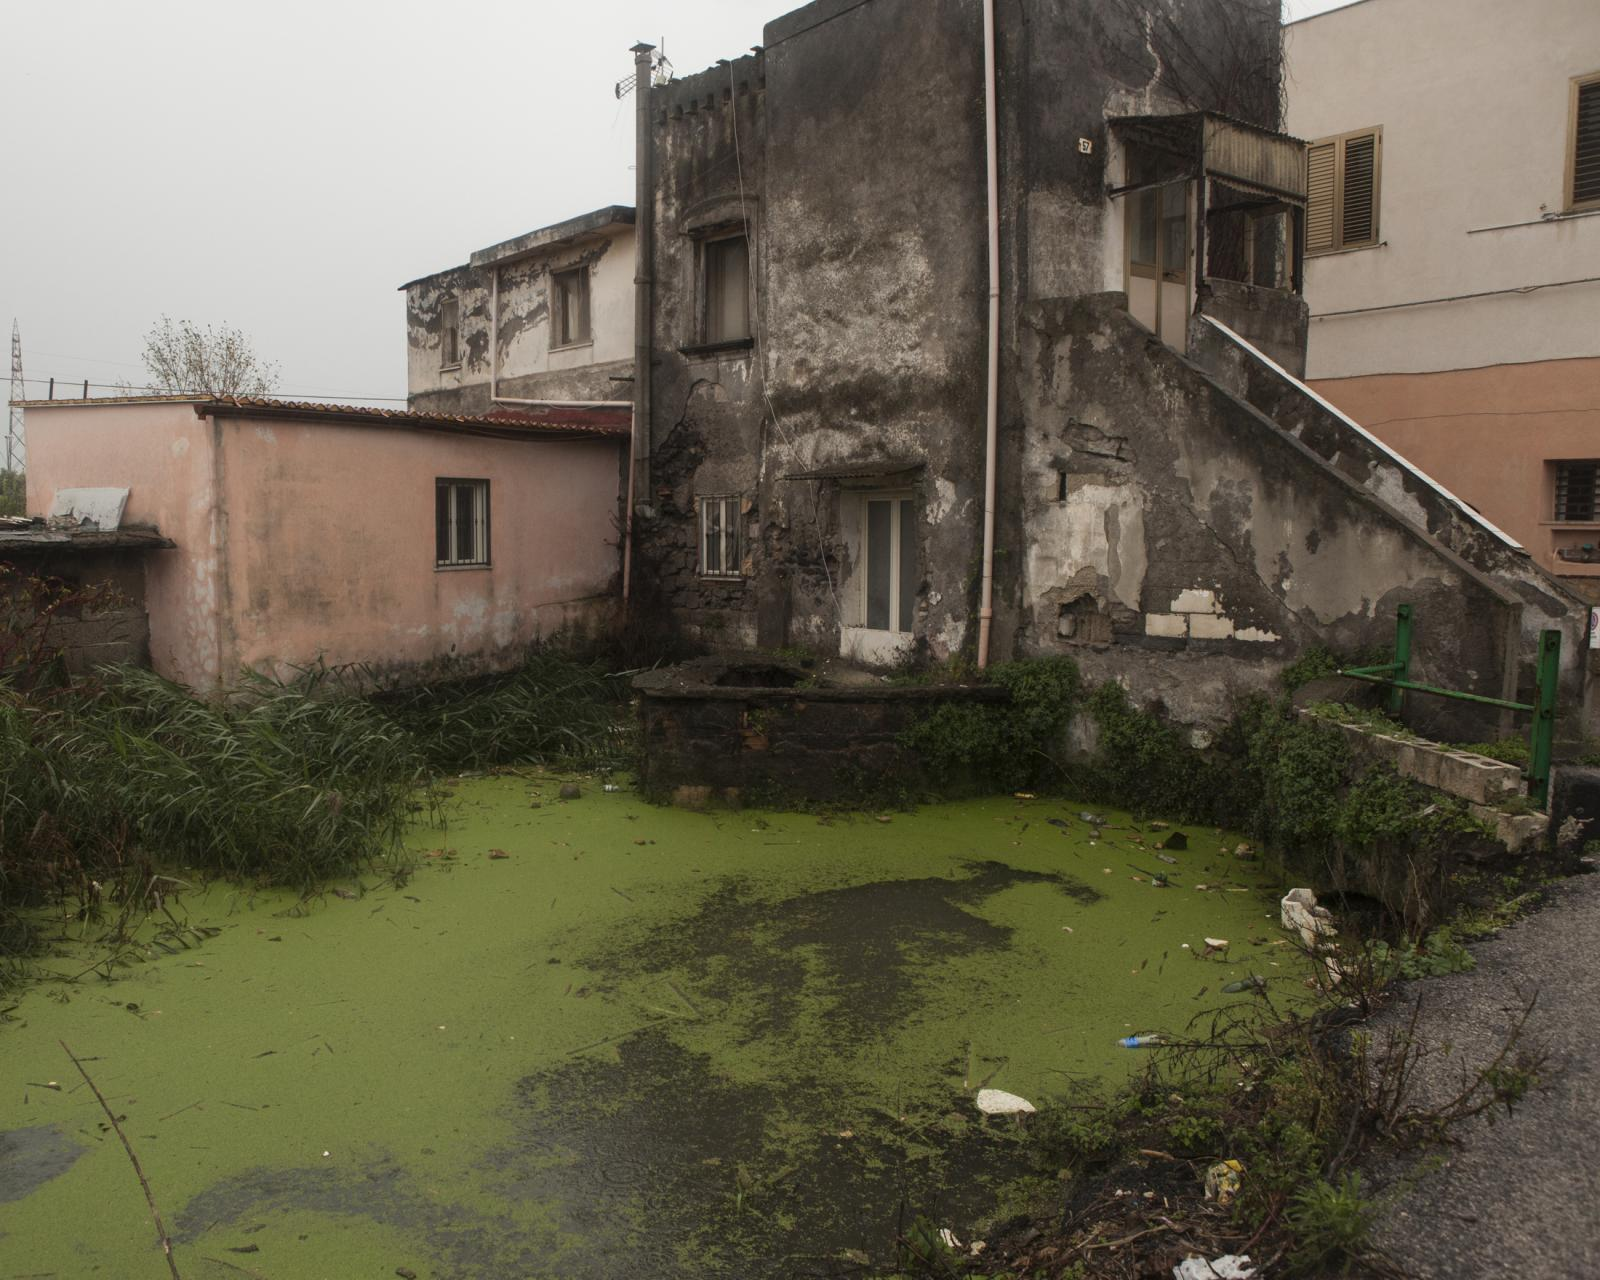 Scafati, November 2018. View of a house that stands on one of the canals that cross the city. During the winter rains these canals often overflow and transport solid waste and chemicals from upstream tributaries.